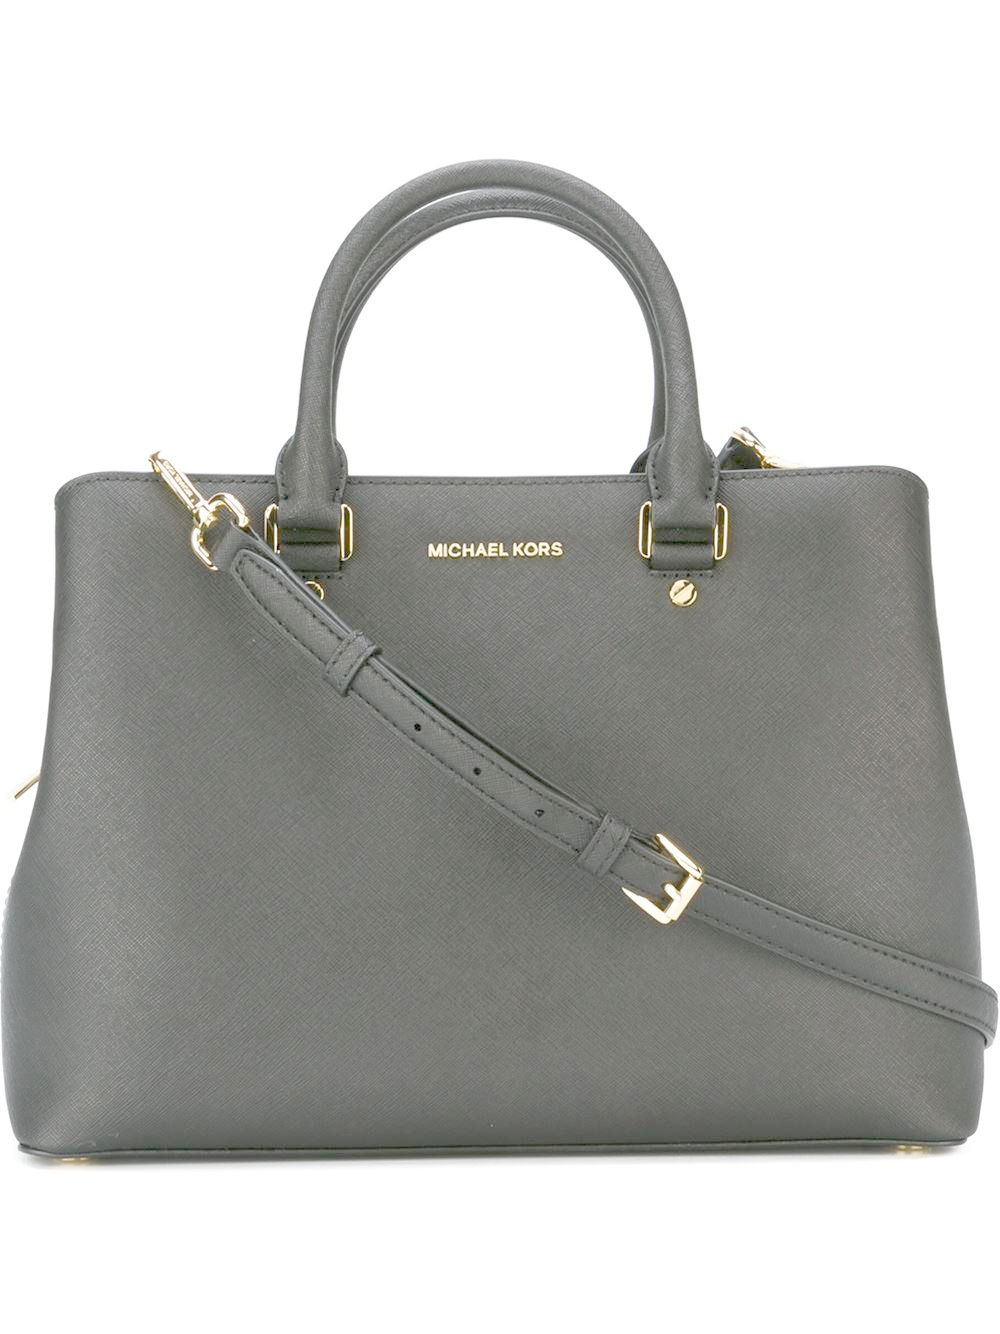 michael michael kors savannah large satchel in gray lyst. Black Bedroom Furniture Sets. Home Design Ideas